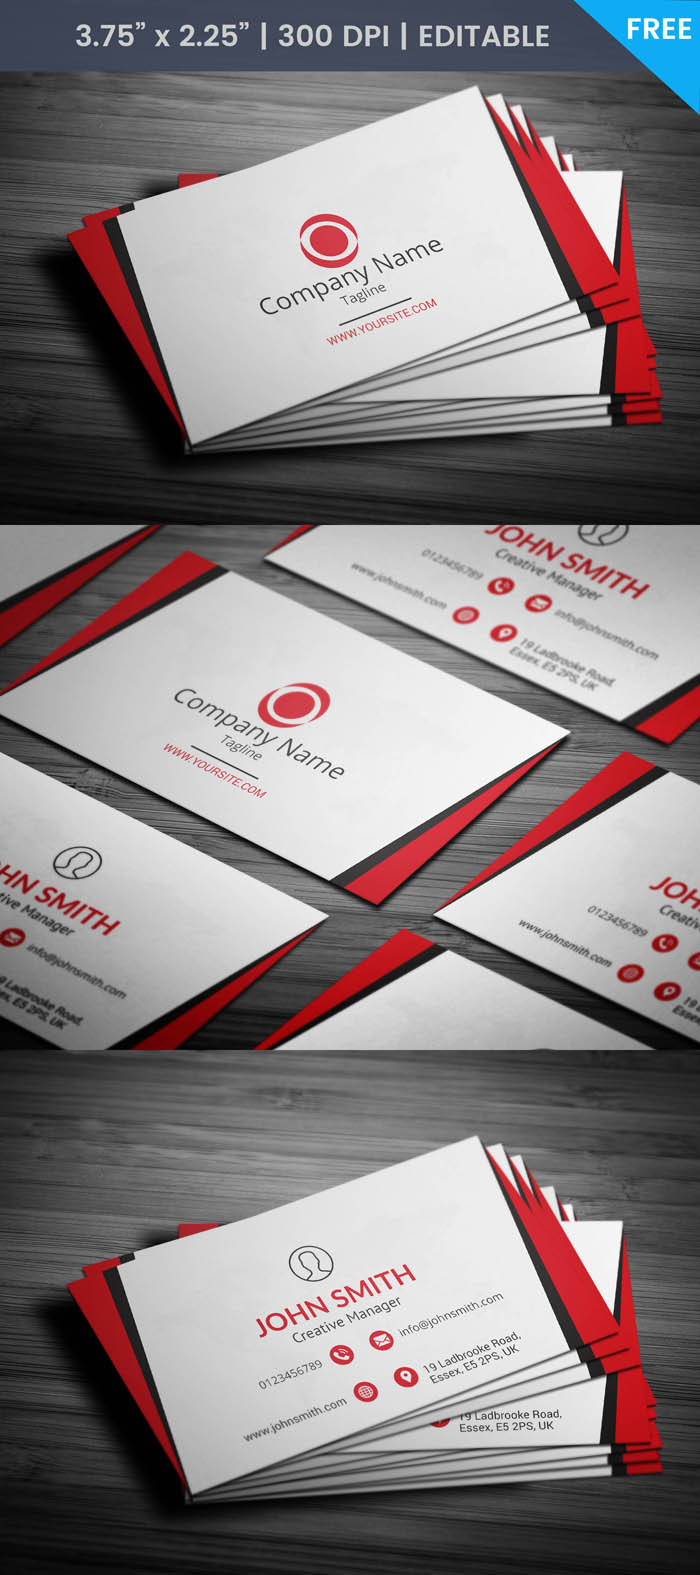 Networking Business Card - Full Preview